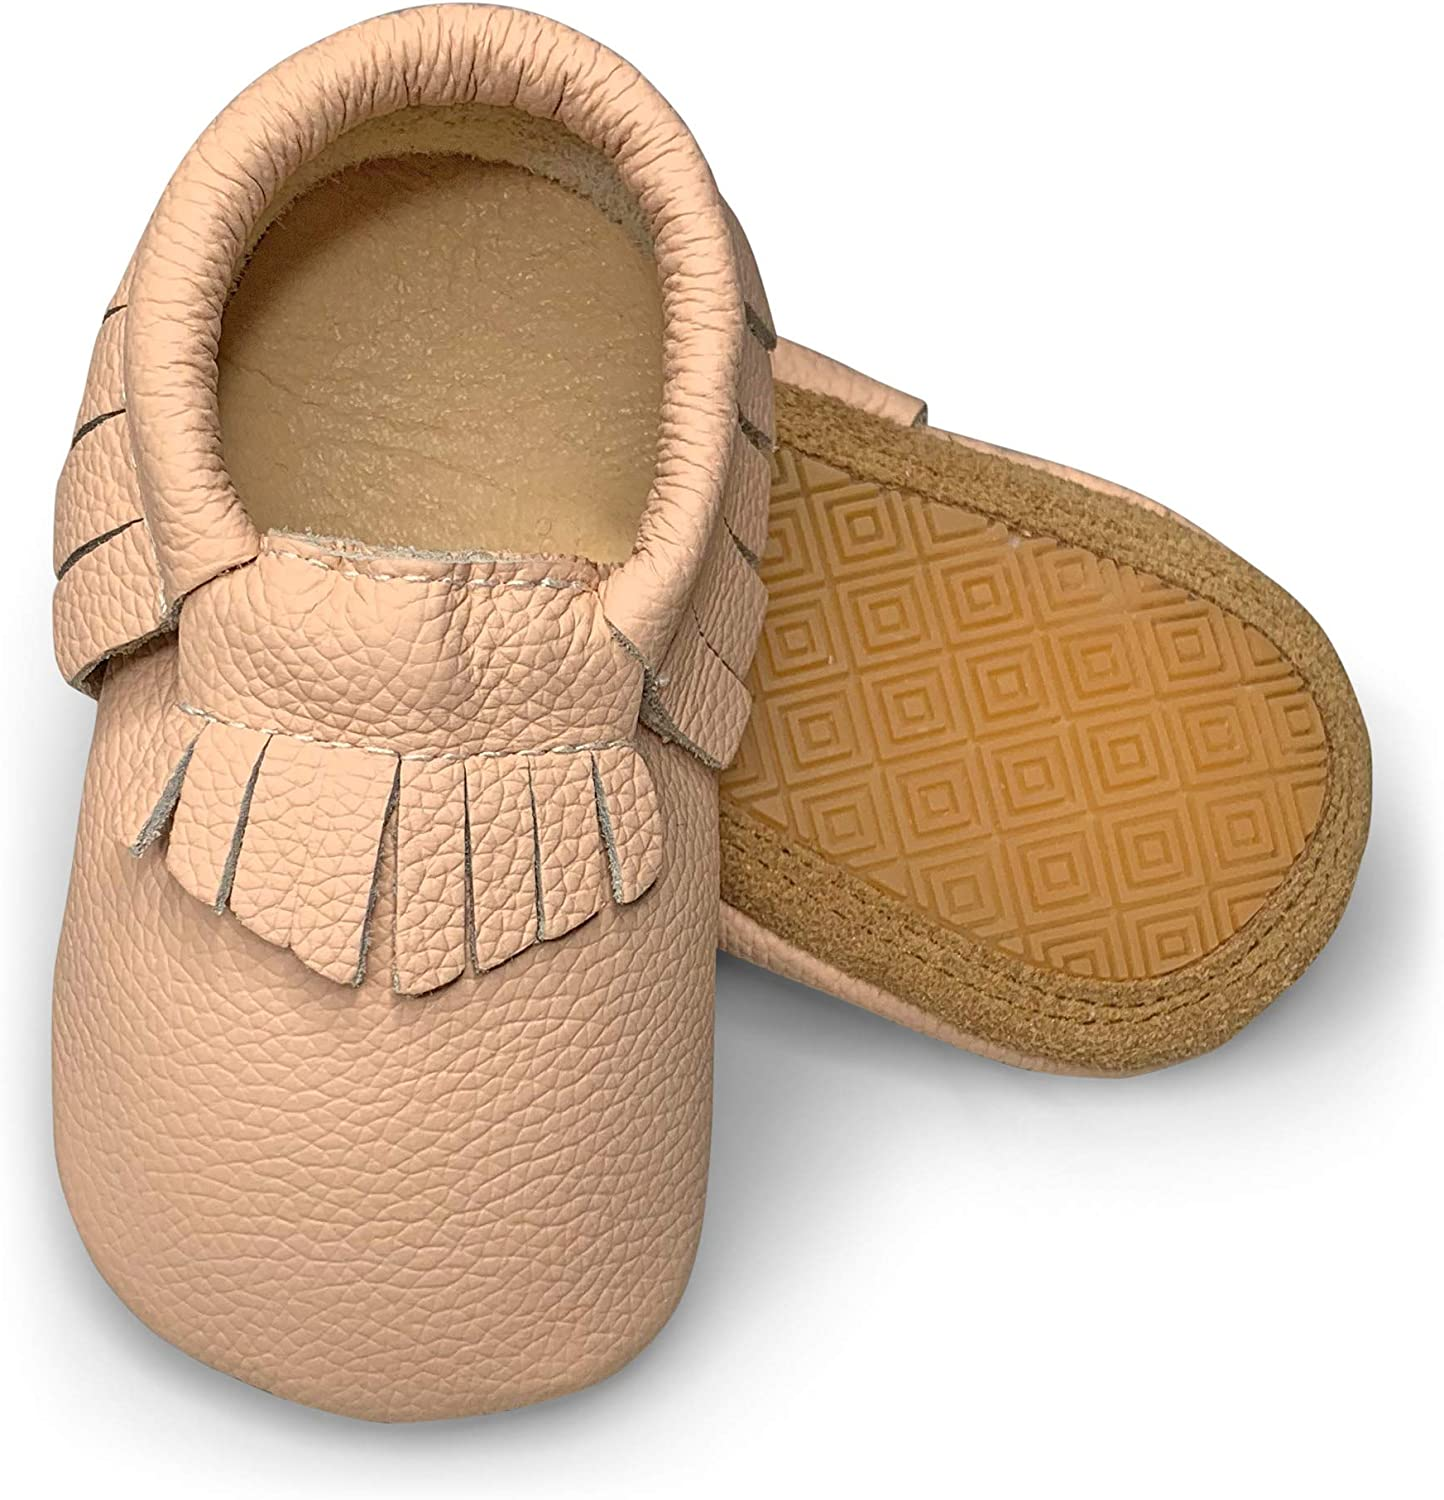 Lucky Love Baby Moccasins Premium Leather Infant, Baby Toddler Shoes for Girls and Boys